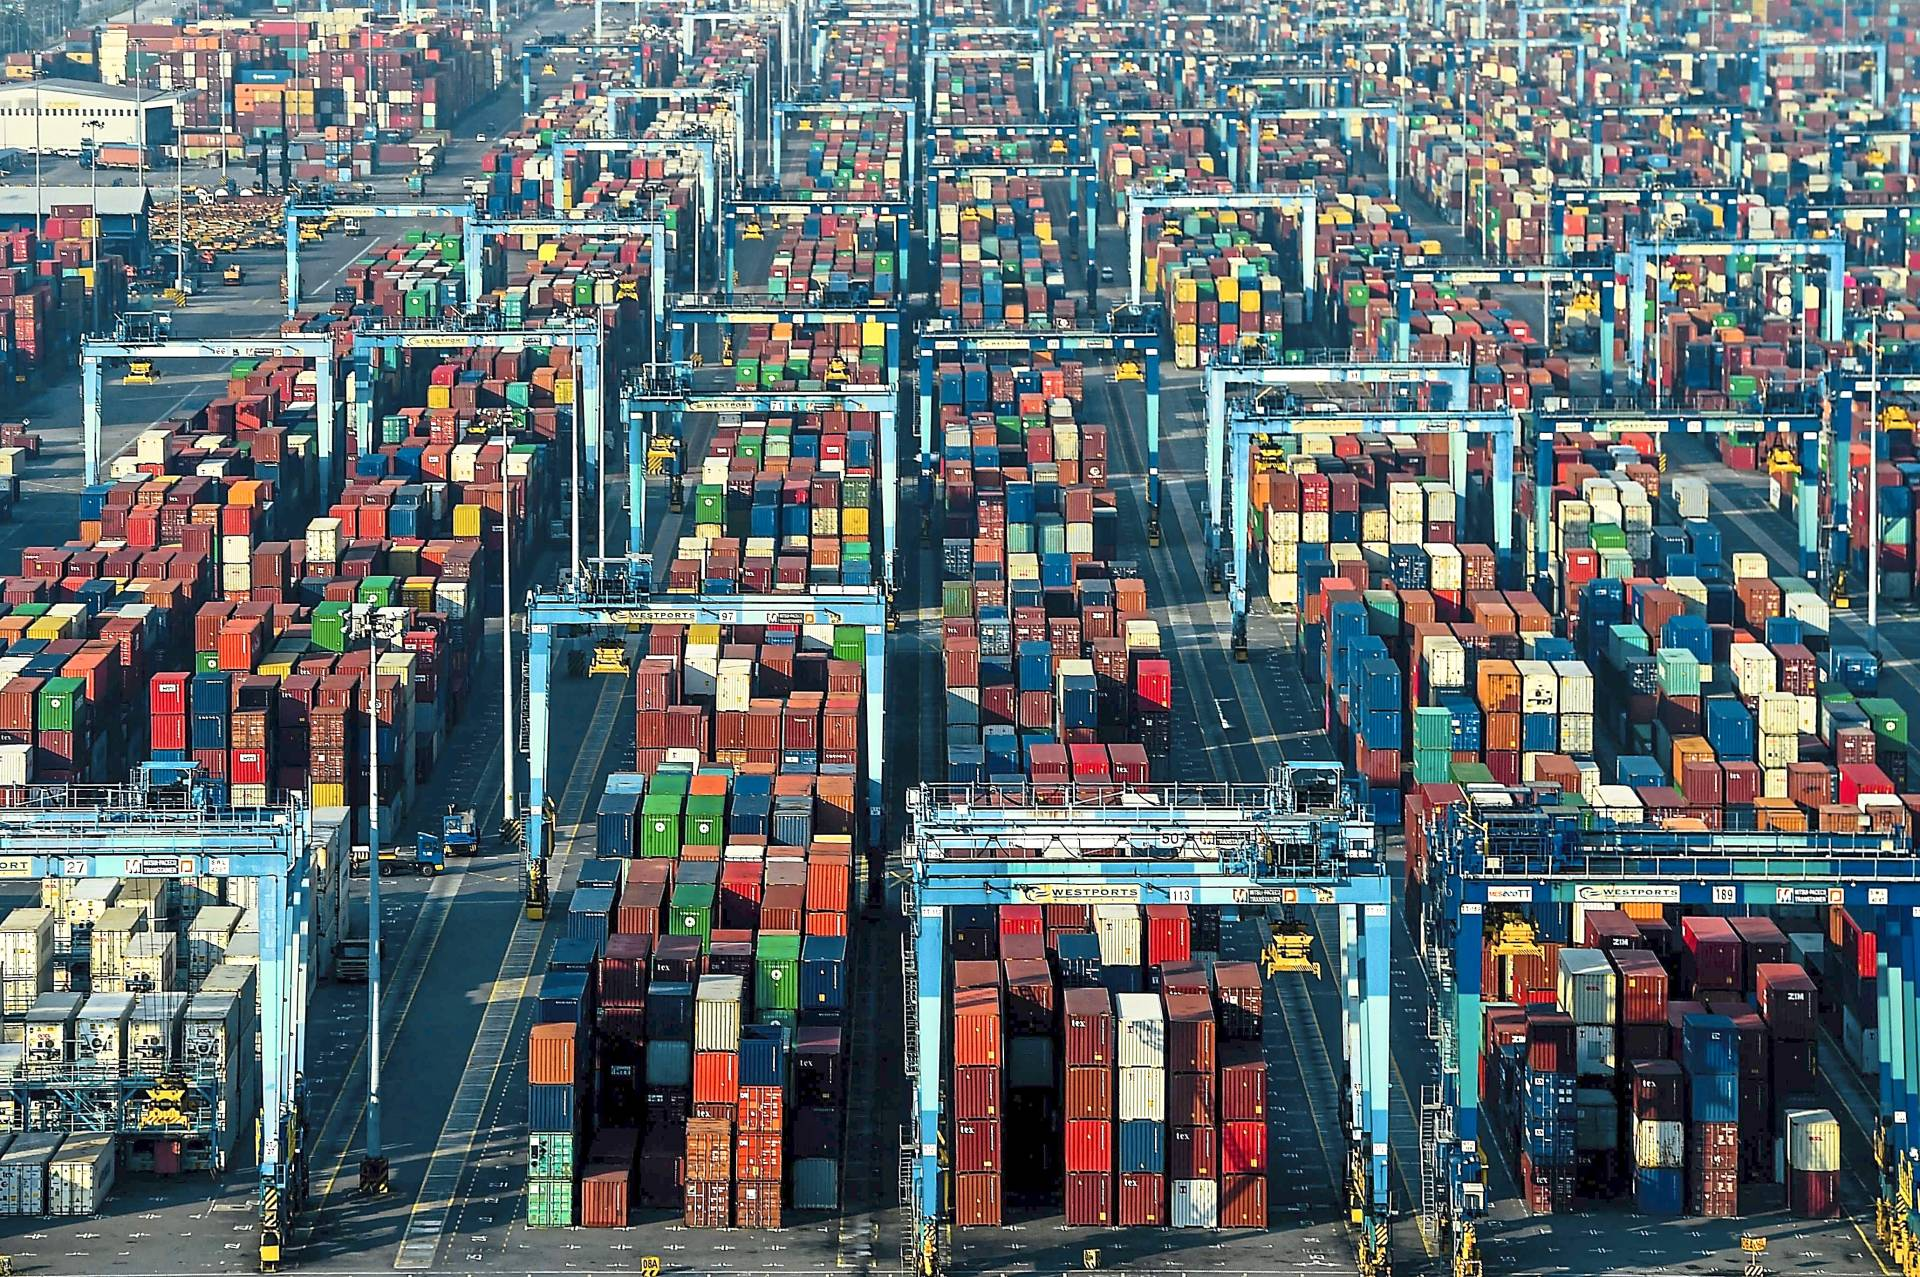 Westports to undertake impairment in Q4 for vessel incident